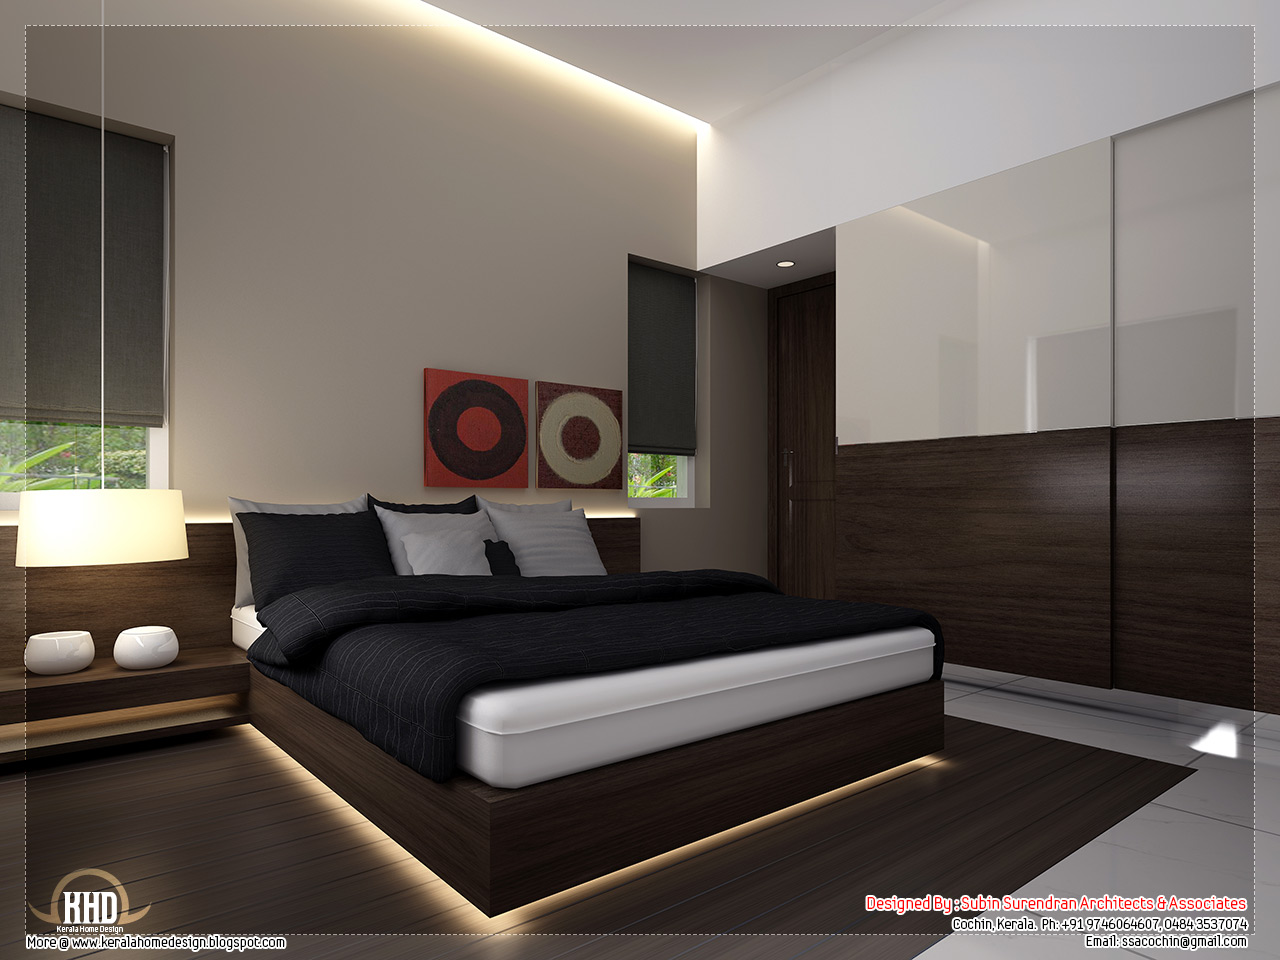 Beautiful home interior designs kerala homes for Interior designs for bedrooms ideas